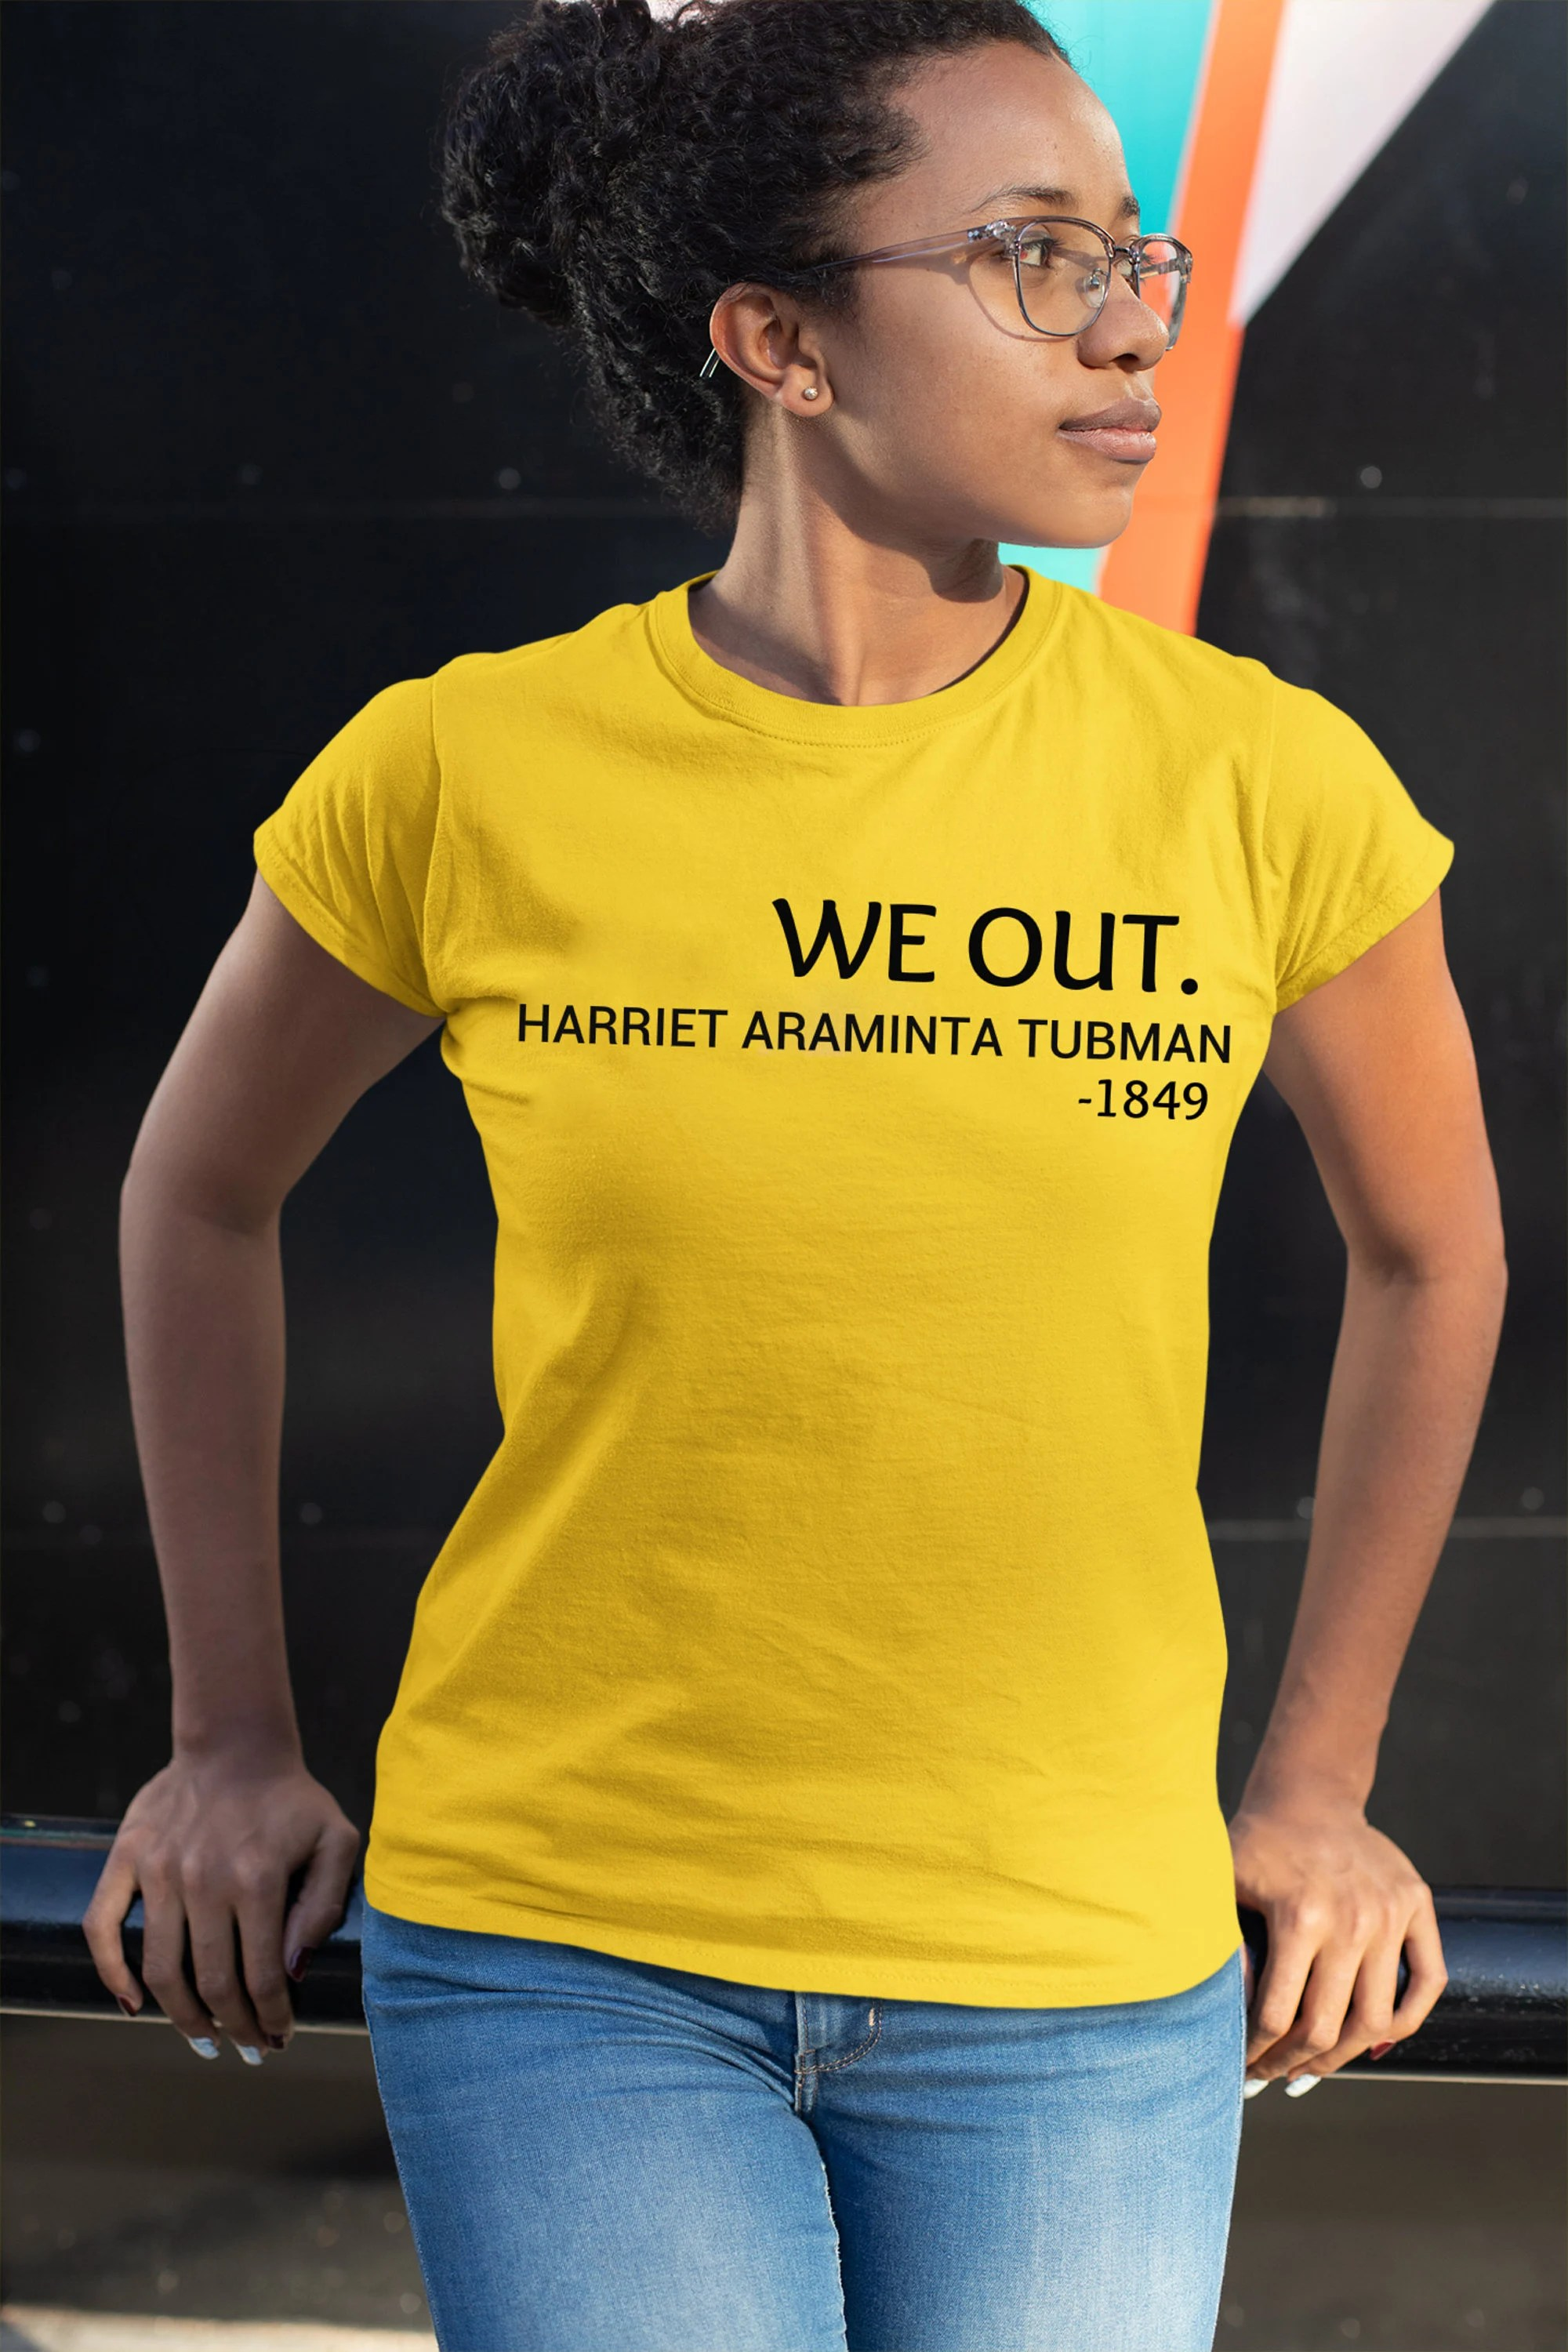 We Out Harriet Tubman Tee Black History Women S History